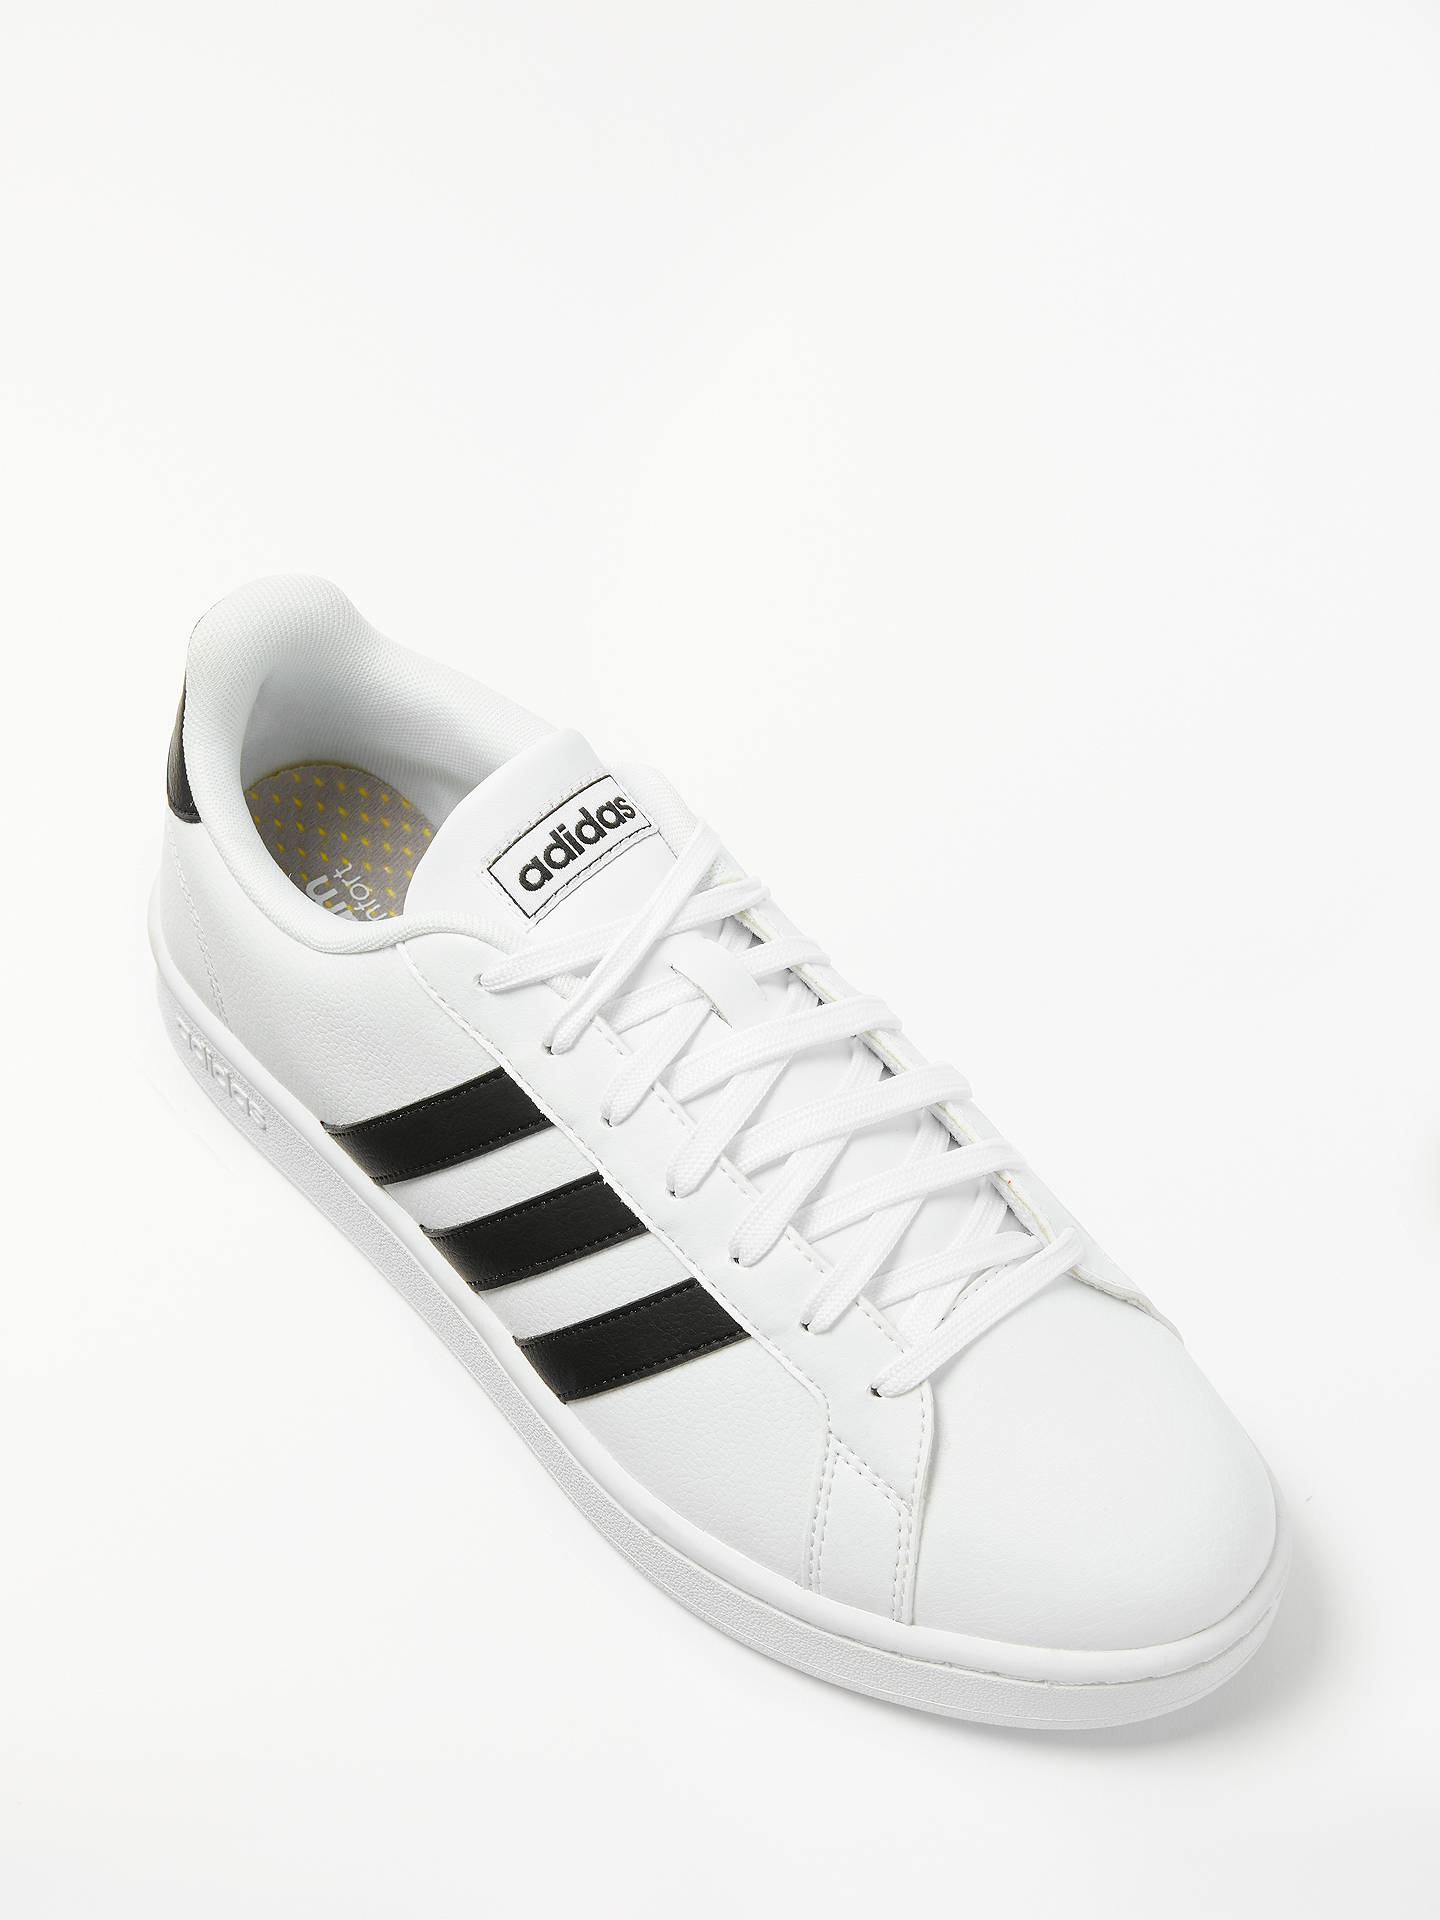 98466b99aa adidas Grand Court Men s Trainers at John Lewis   Partners